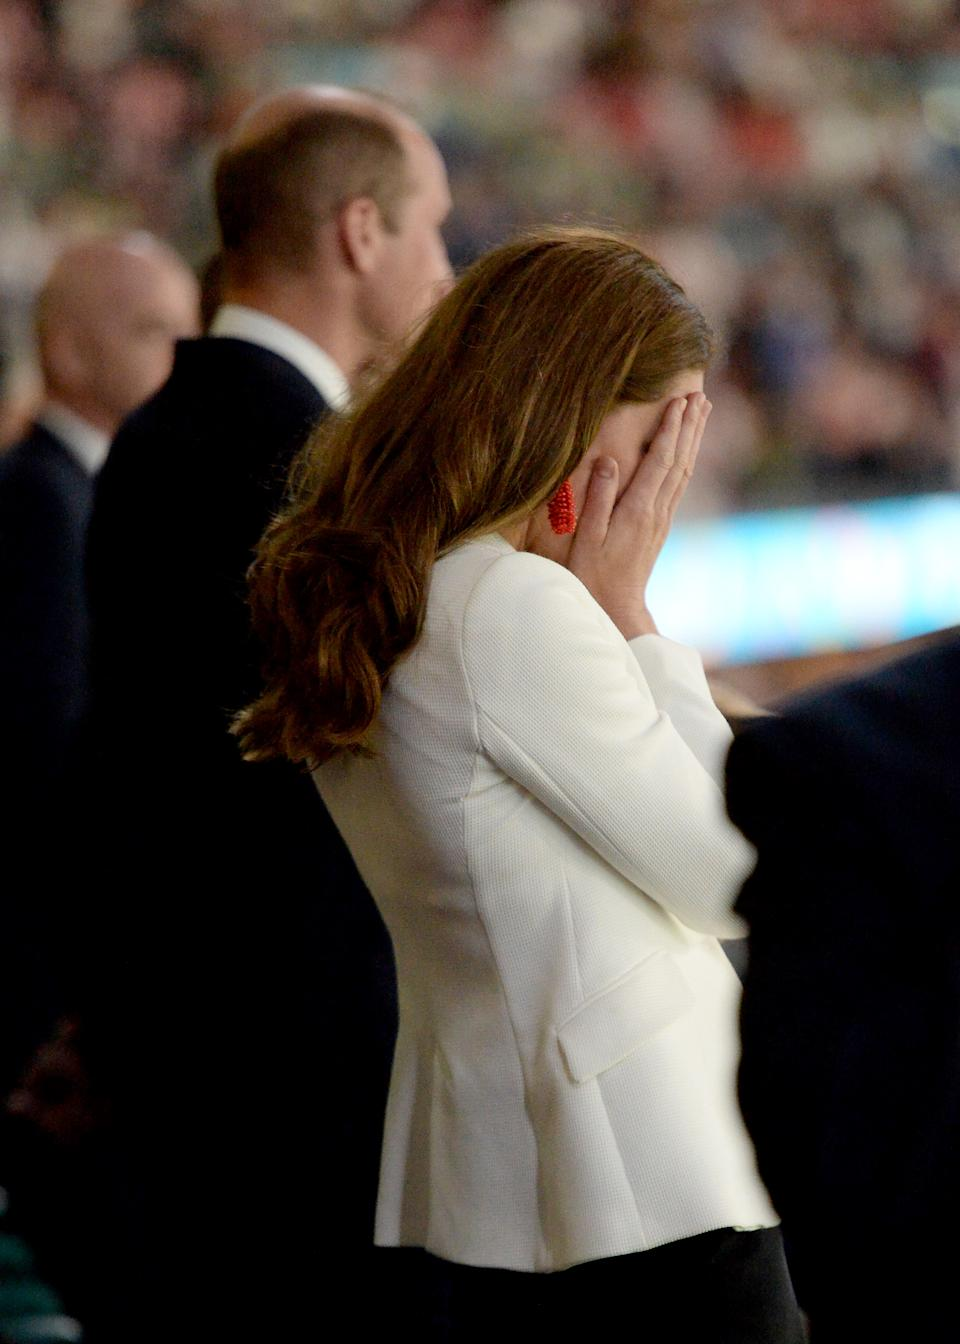 LONDON, ENGLAND - JULY 11: Catherine, Duchess of Cambridge shows her dejection at the end of the UEFA Euro 2020 Championship Final between Italy and England at Wembley Stadium on July 11, 2021 in London, England. (Photo by Eamonn McCormack - UEFA/UEFA via Getty Images)